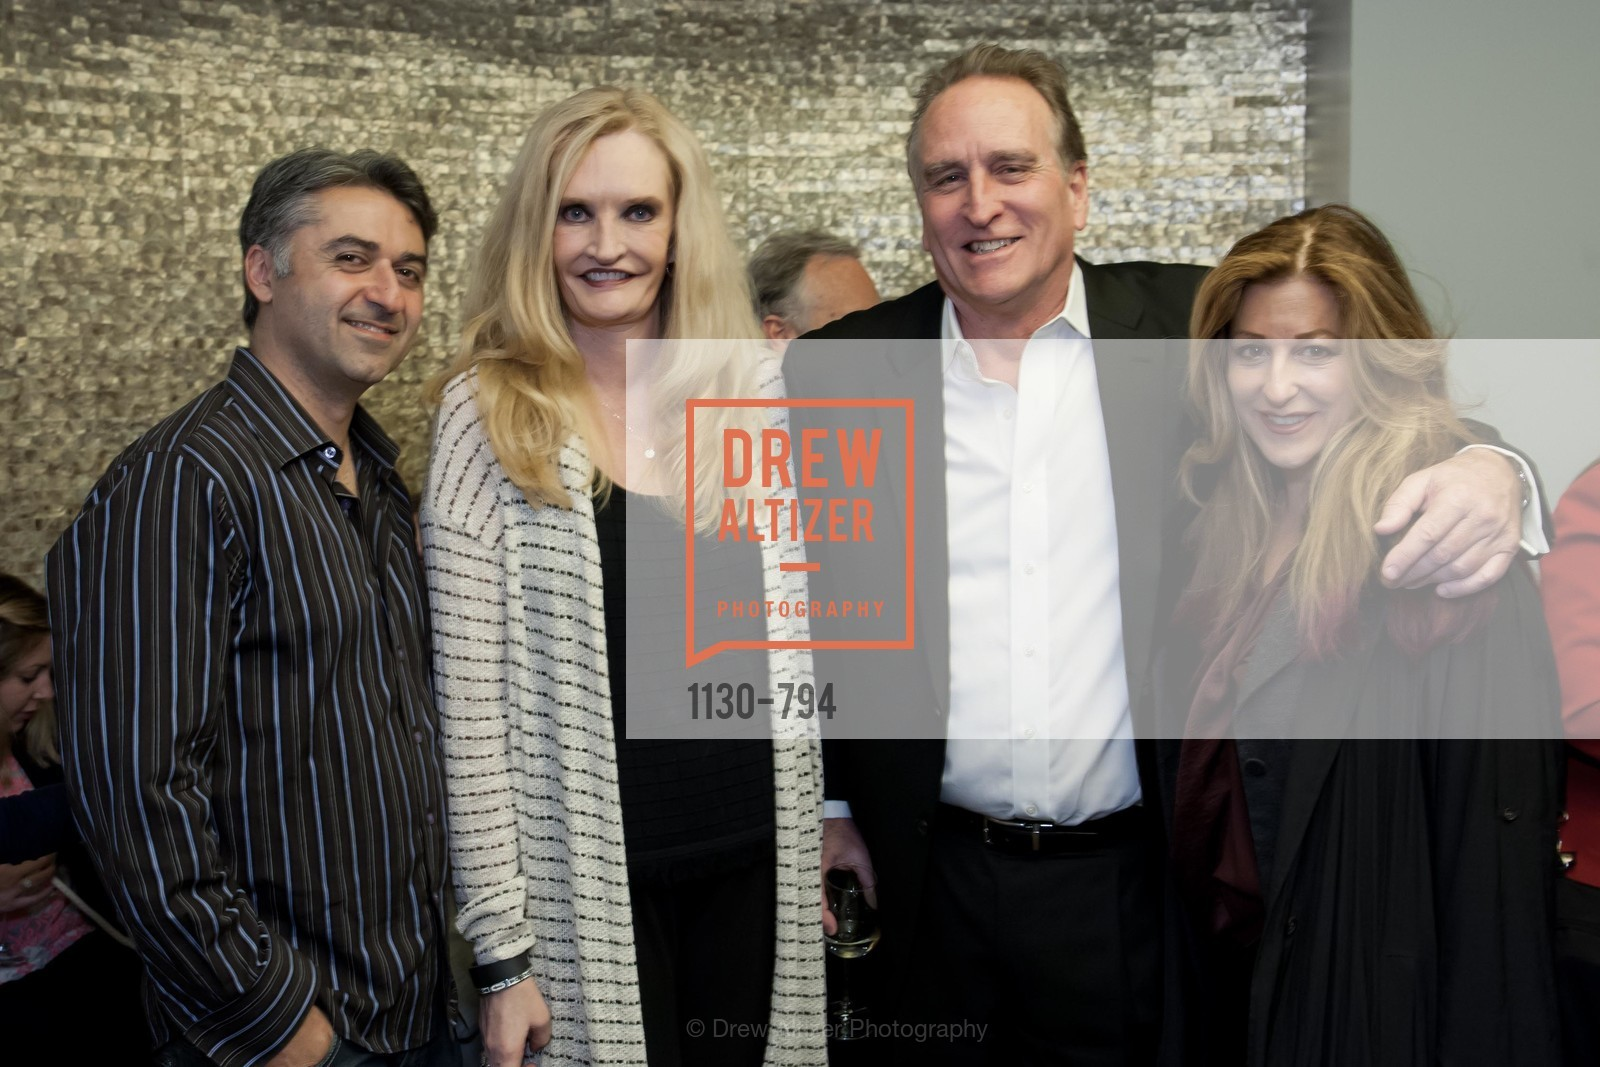 Hooman Khalili, Beth Townsend, Mark Wagoner, Victoria Loren Miller, EPI CENTER MedSpa Anniversary and Launch of REPLETE - Evening Celebration, US, April 22nd, 2015,Drew Altizer, Drew Altizer Photography, full-service agency, private events, San Francisco photographer, photographer california